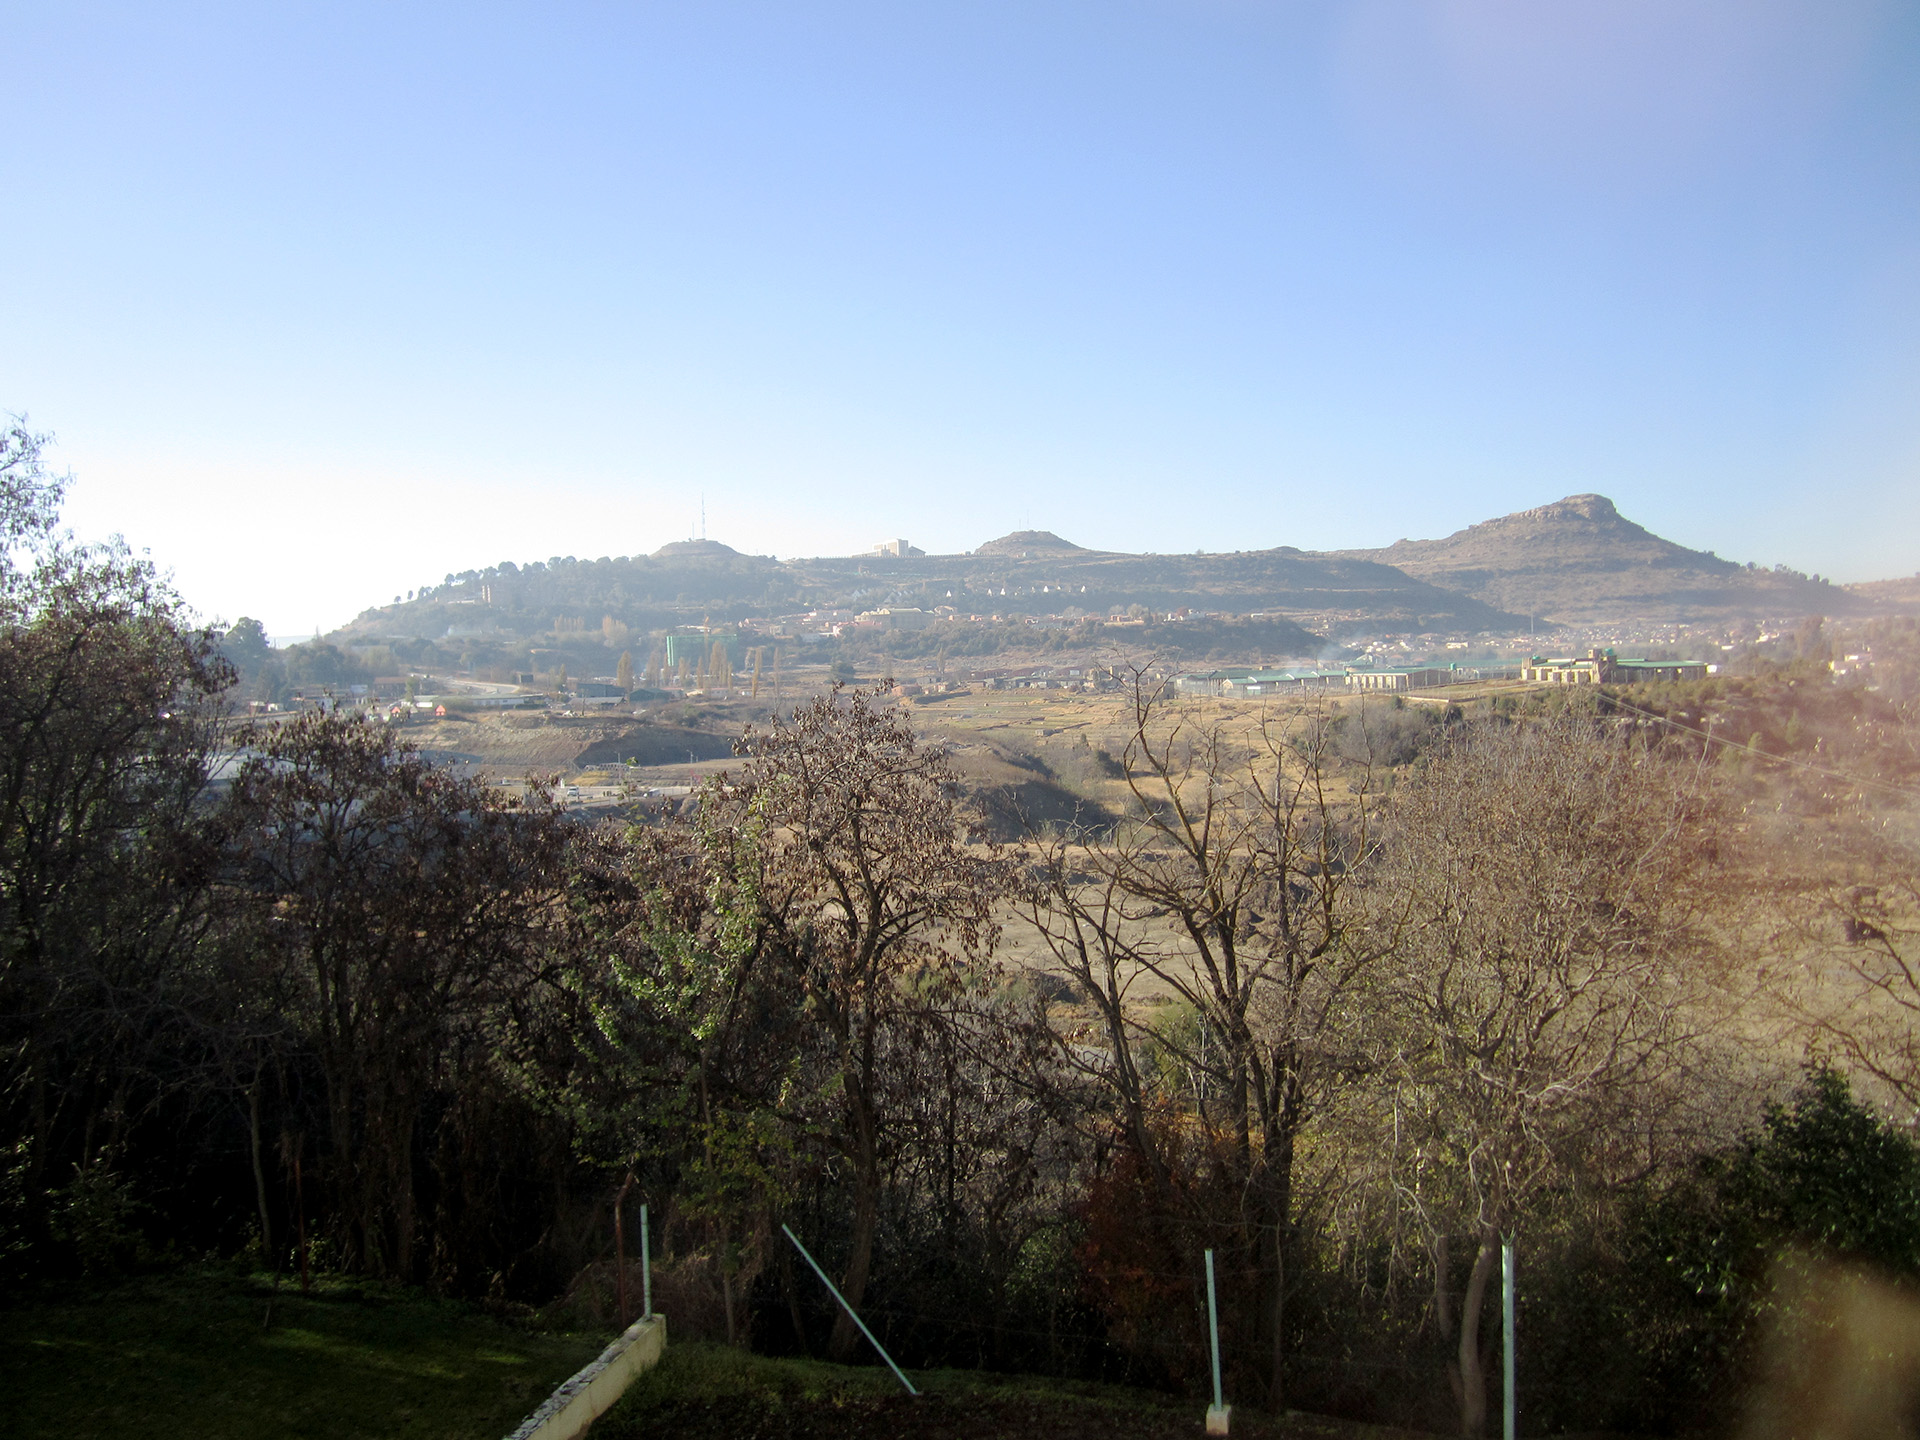 Looking out from our hotel over Lesotho.